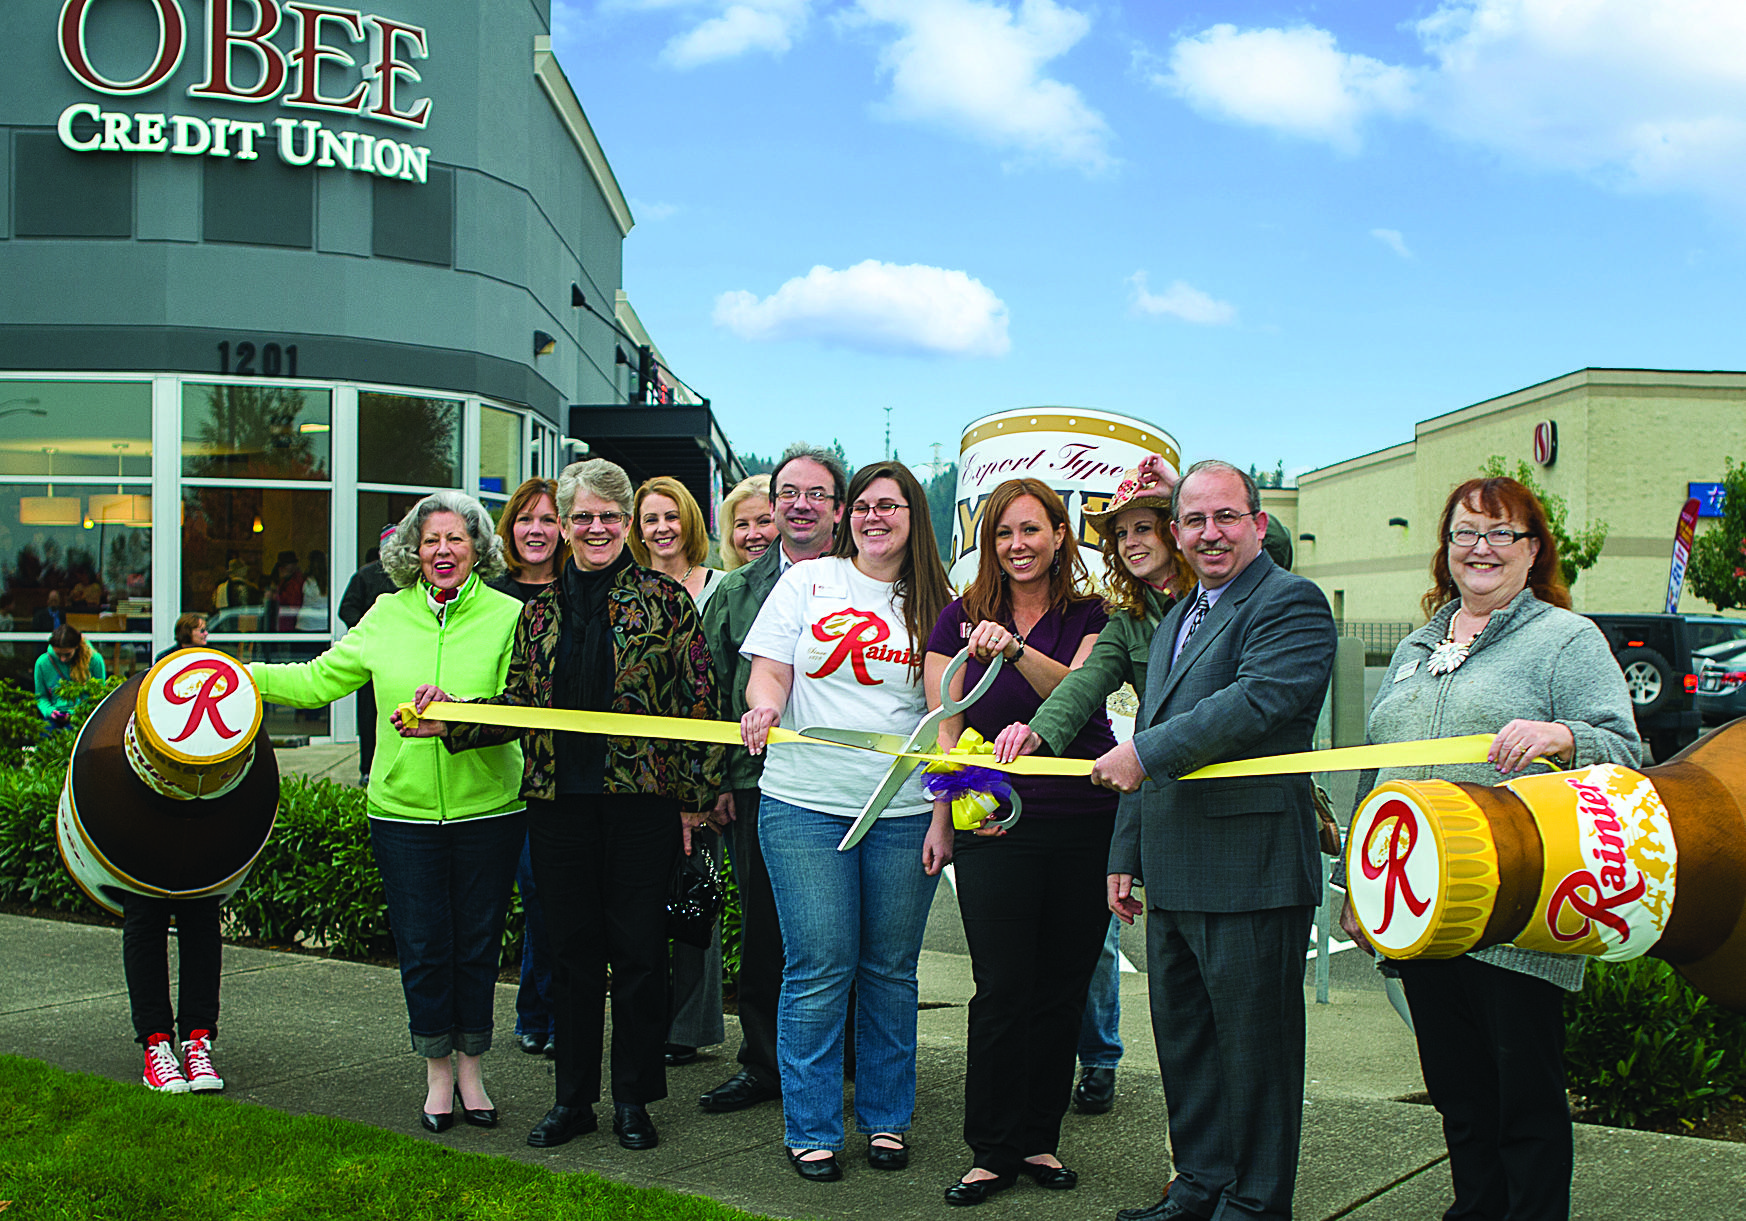 More than 300 visitors and over $500 raised for charity at our Yelm Grand Opening. Thank you Yelm!